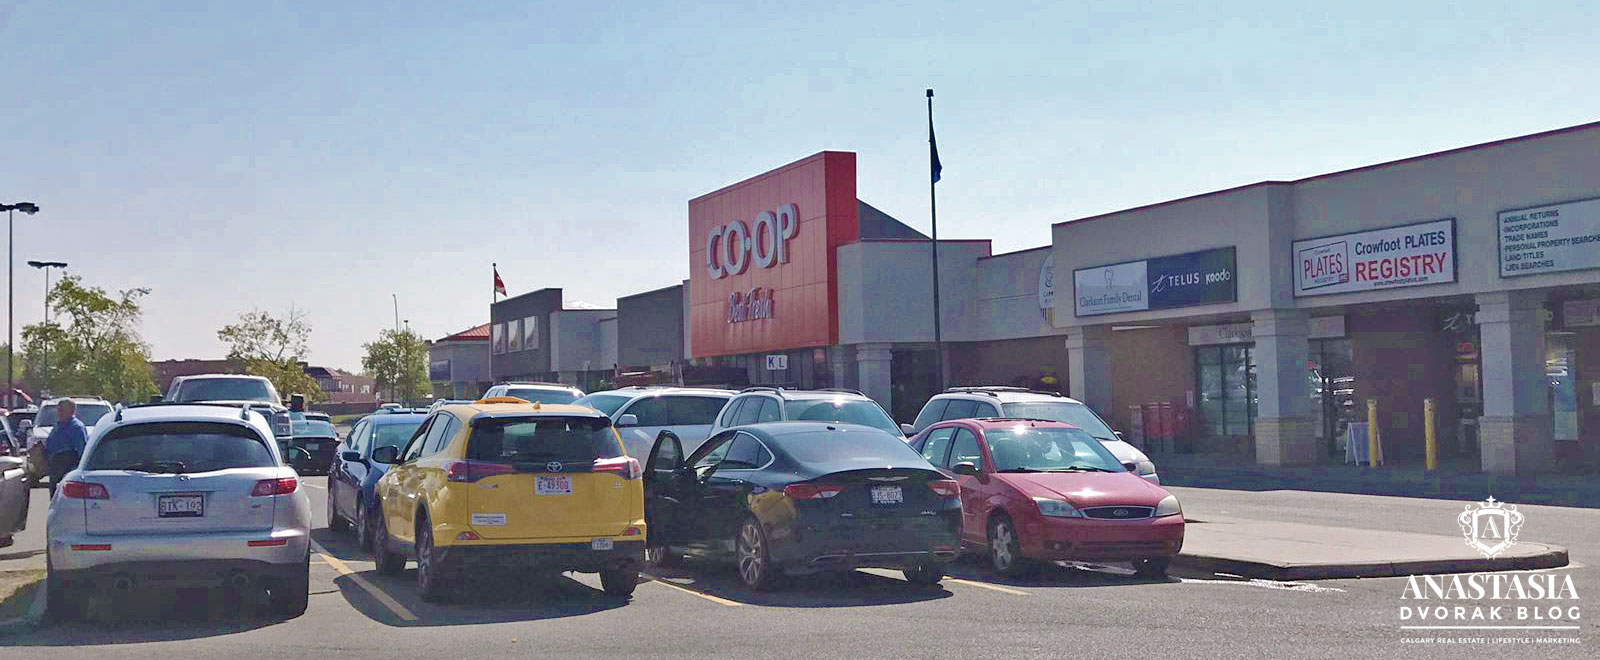 Crowfoot Co-Op